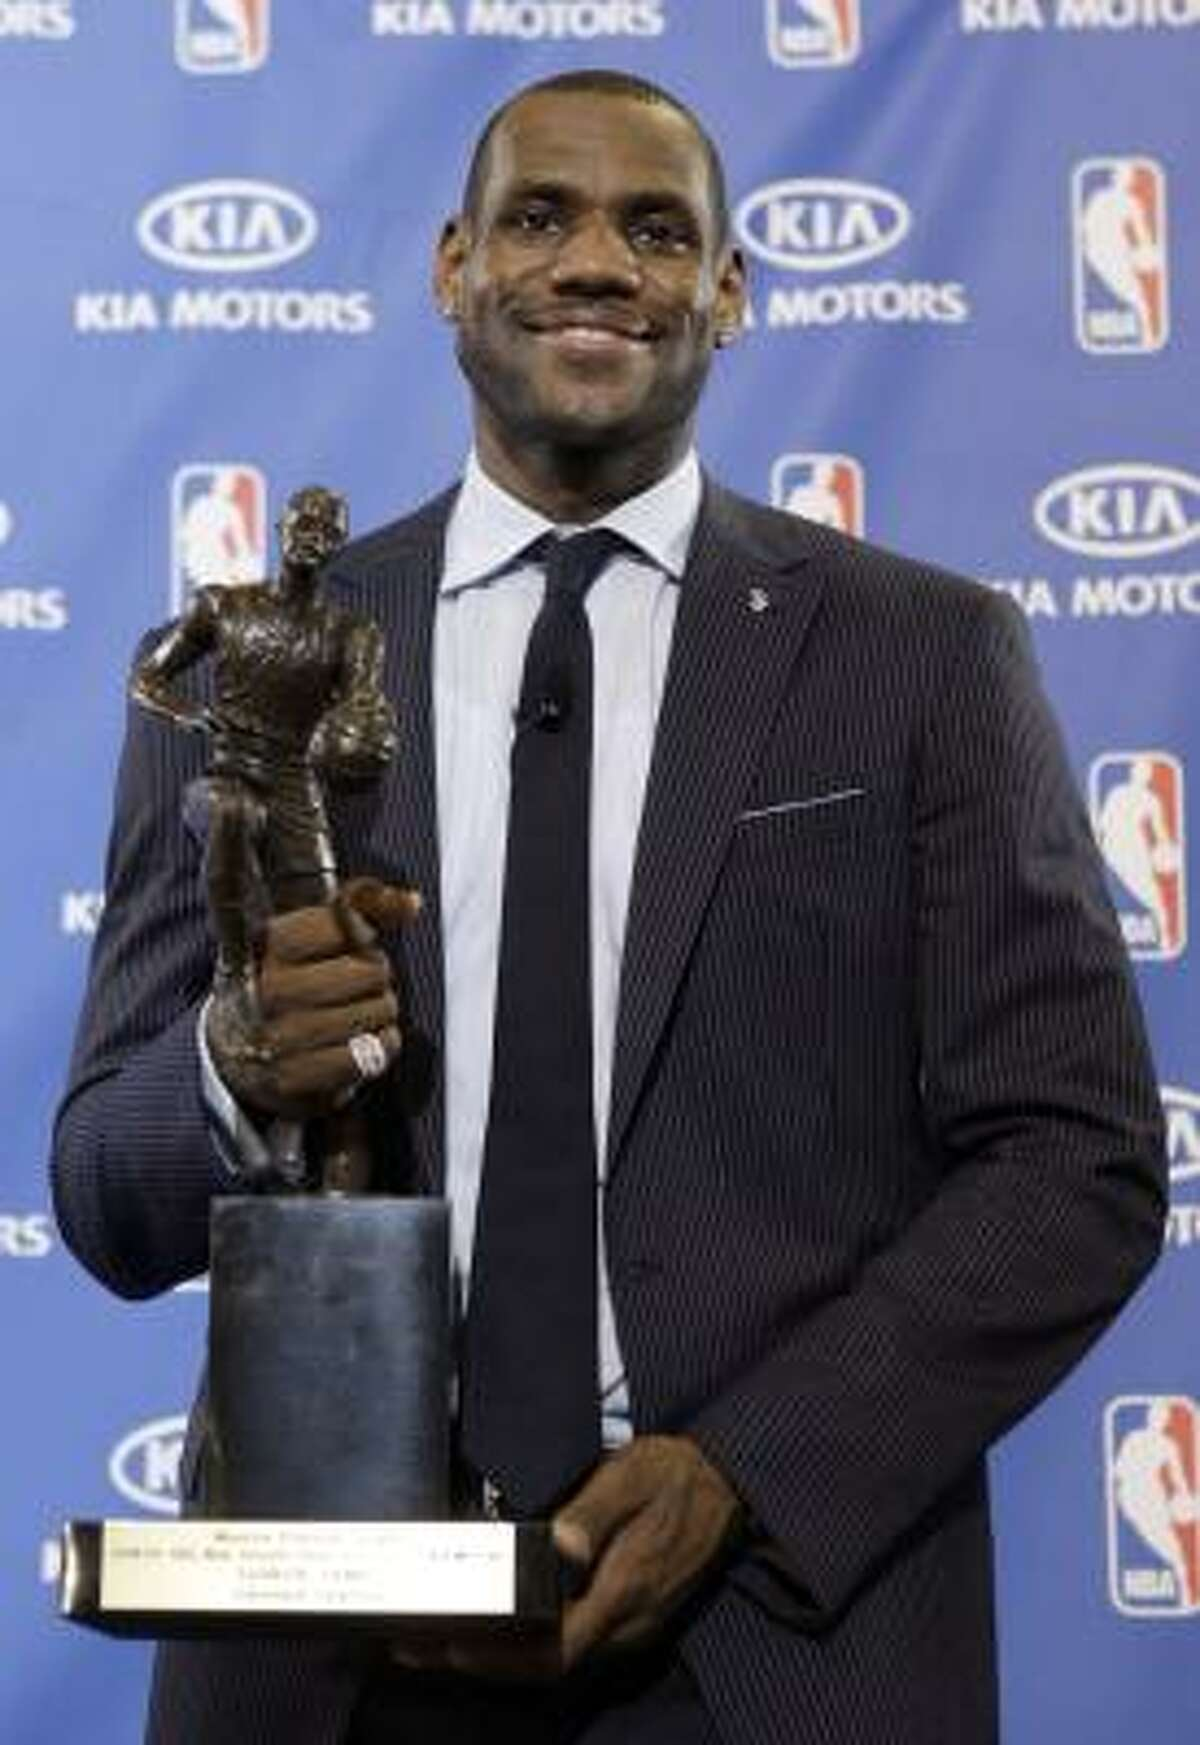 2009: LeBron James, Cleveland Cavaliers LeBron James won his first NBA MVP award after averaging 28.4 points, 7.6 rebounds and 7.2 assists per game. James and the Cavaliers had the best record in the NBA during the 2008-09 season as well (66-16).